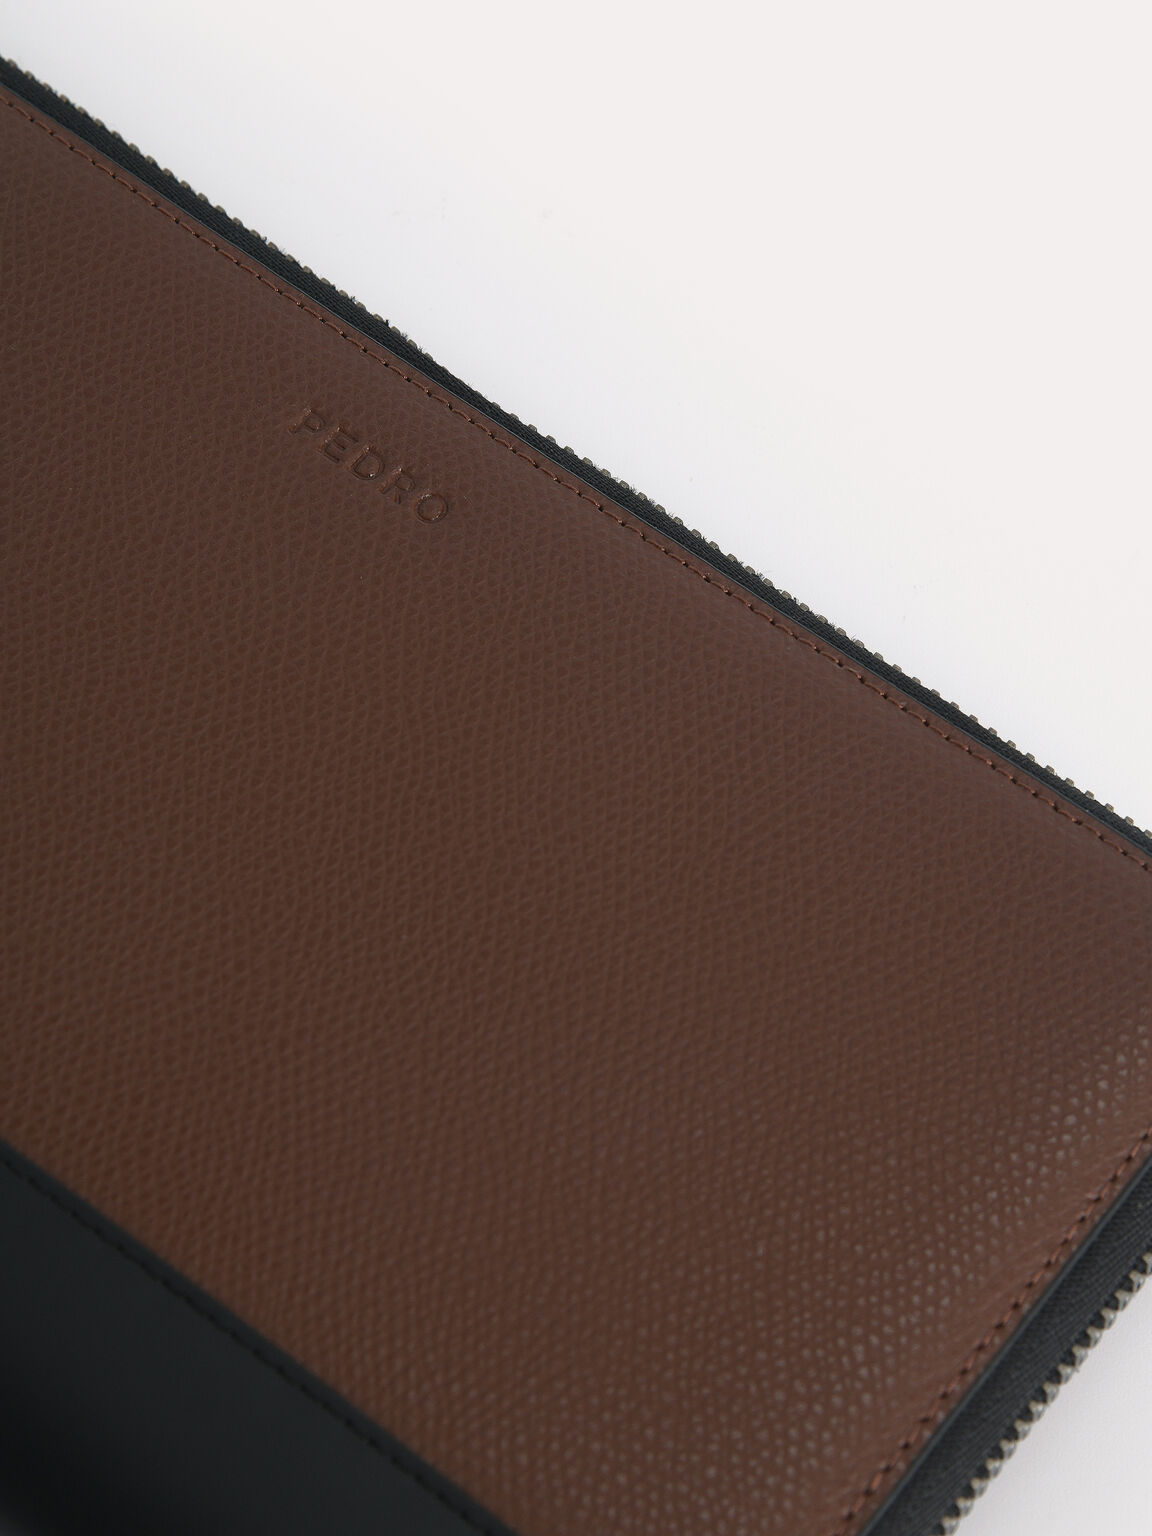 Textured Leather Travel Organiser, Brown, hi-res